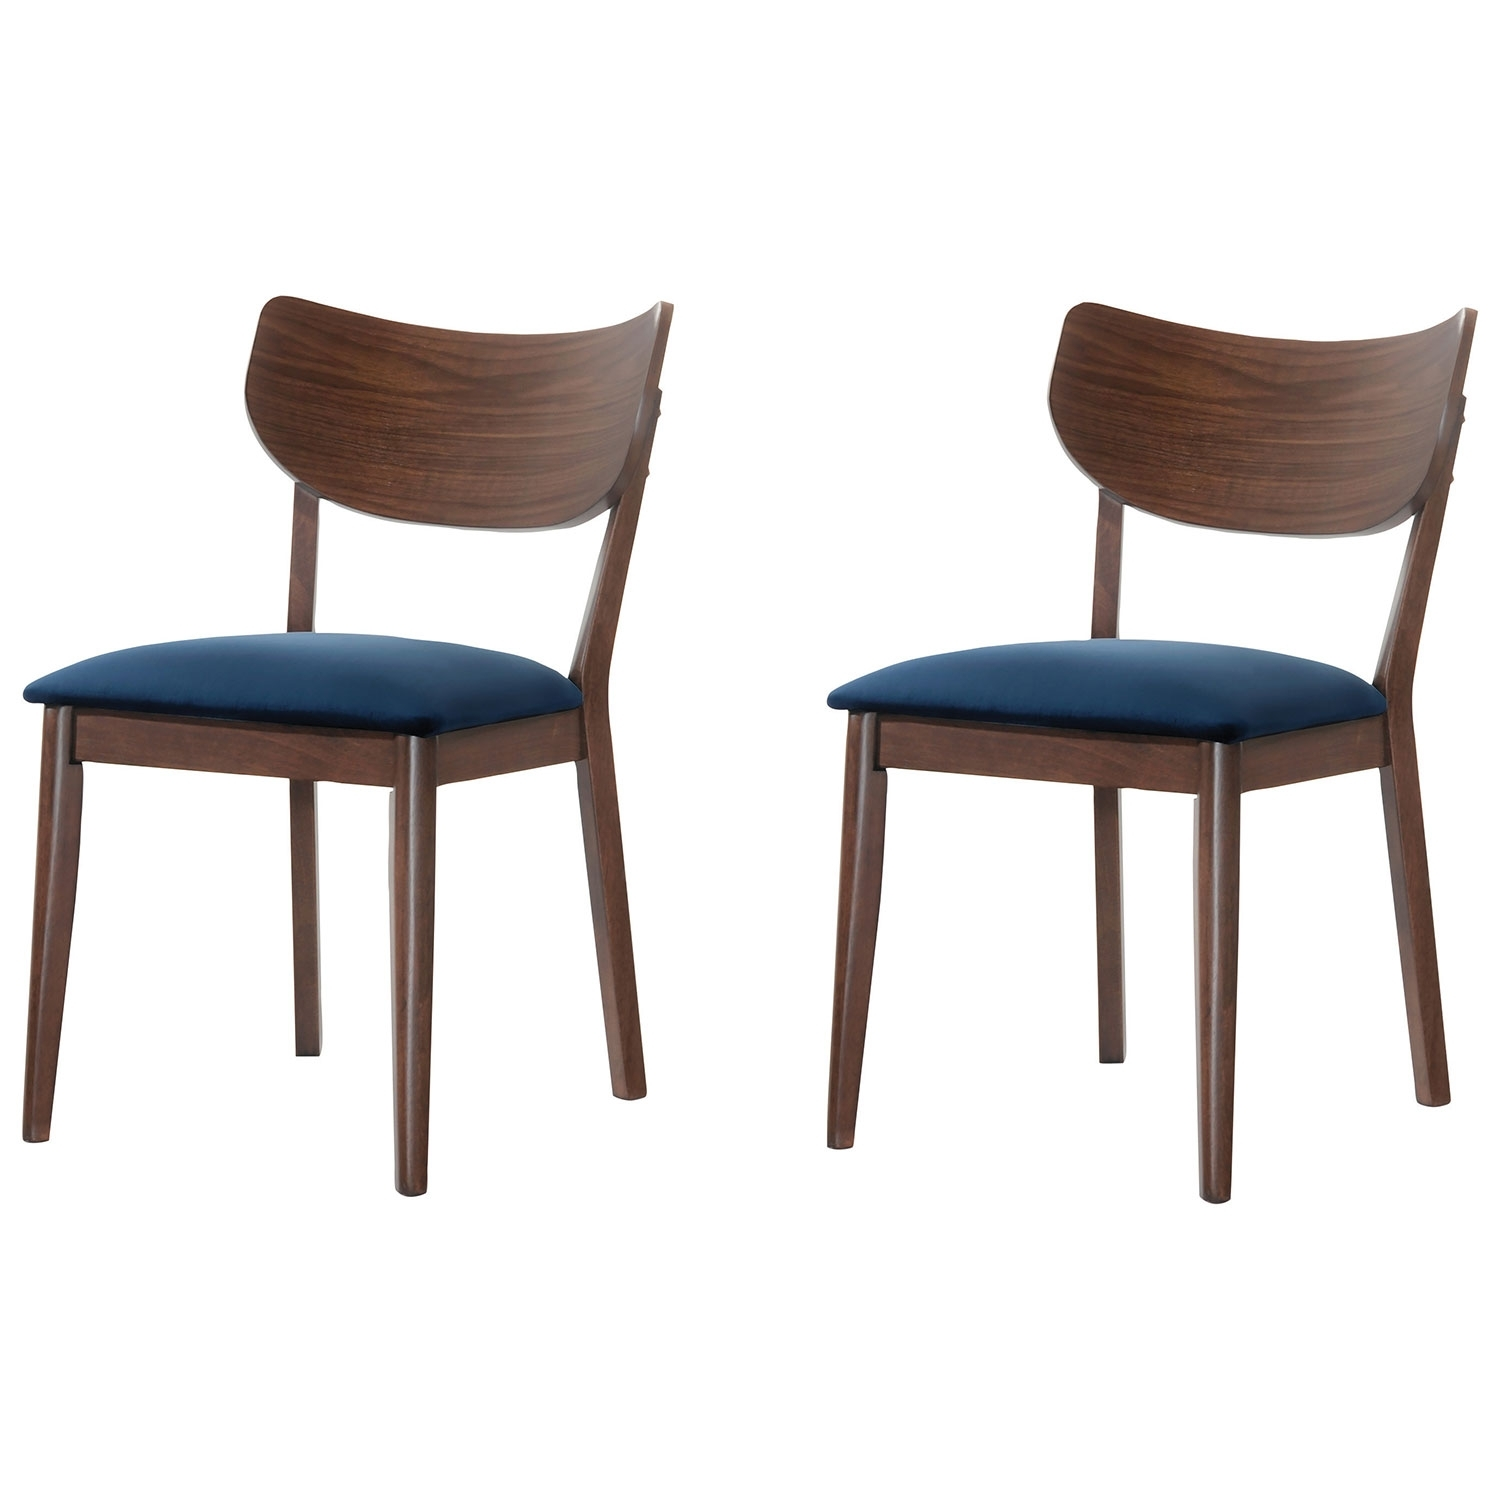 Preferred Cole Ii Orange Side Chairs With Regard To Dining Chairs: Leather, Modern, Contemporary & More – Best Buy Canada (#16 of 20)